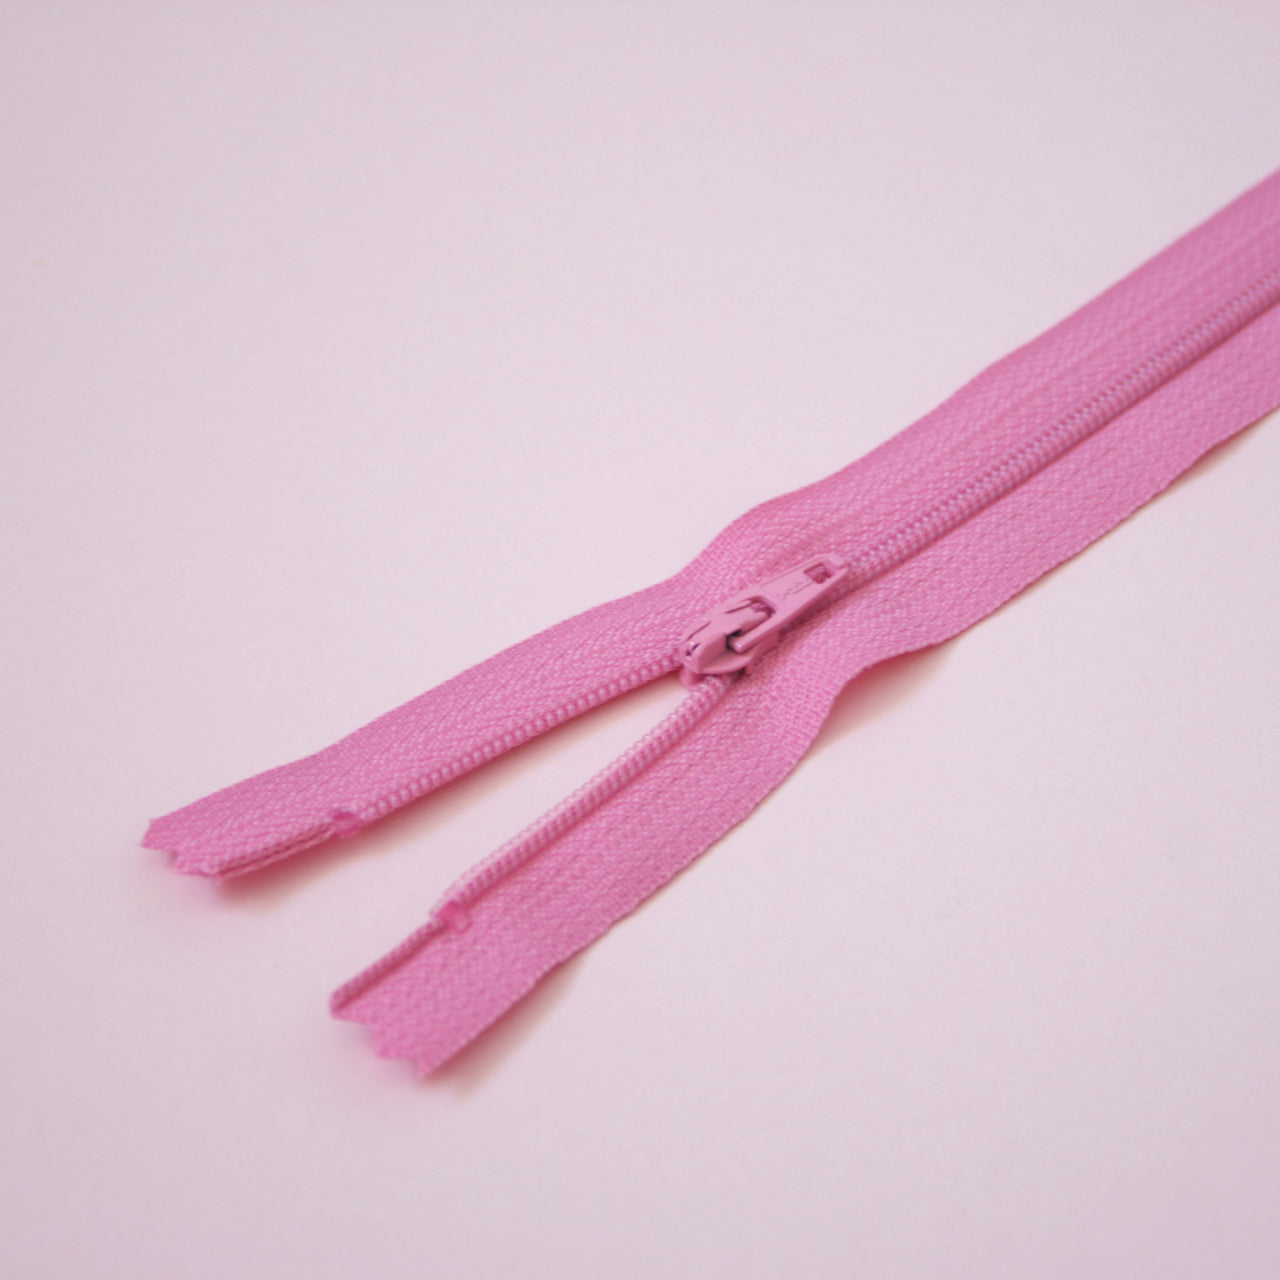 23cm 9 Inch Nylon YKK Dress Zip - 852 Rose Pink